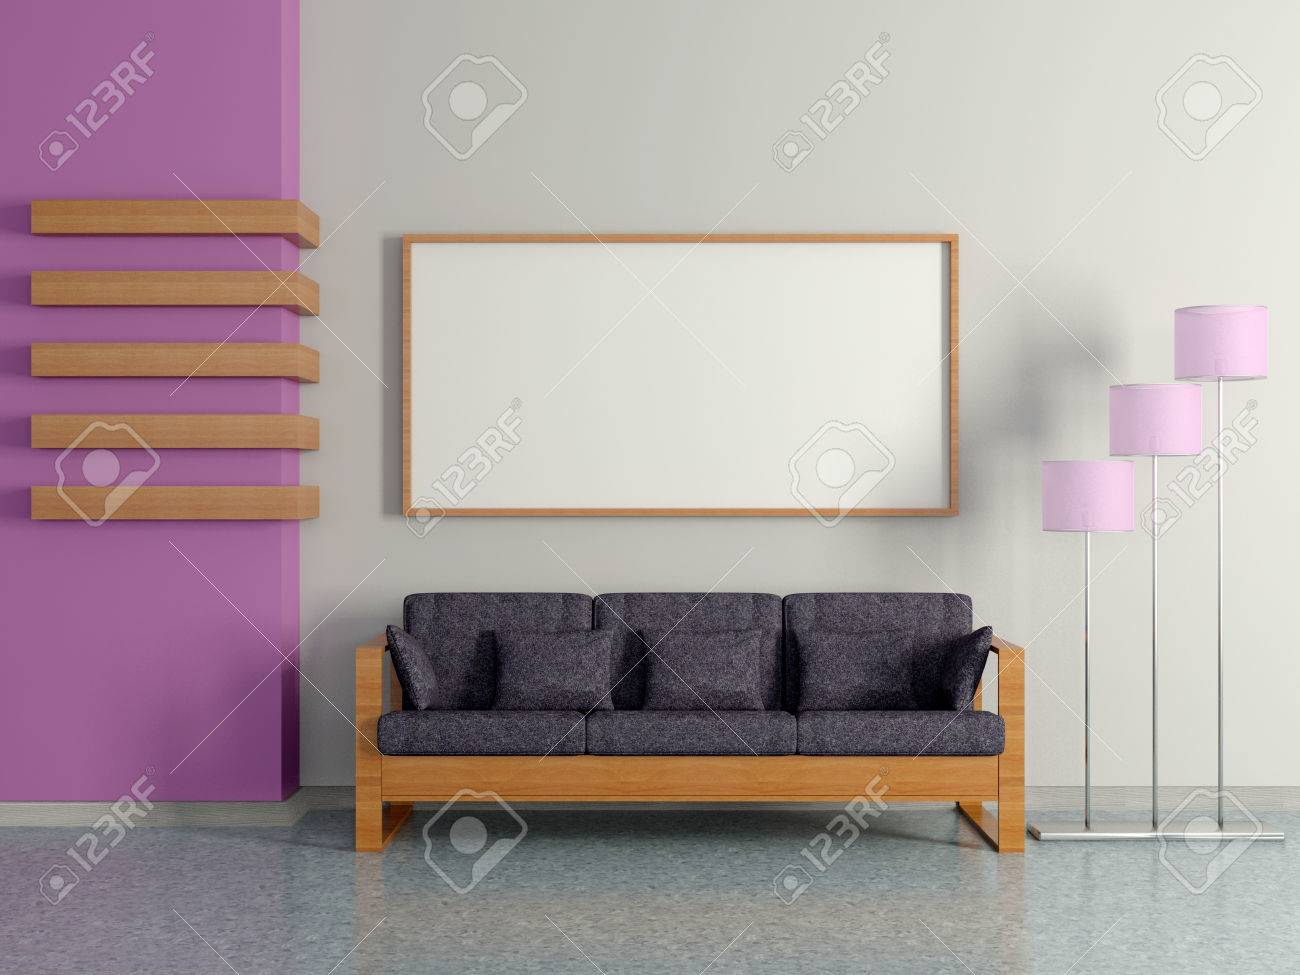 Modern Home Interior With Sofa Near The Violet Magenta Wall, Floor Lamp And  Painting.